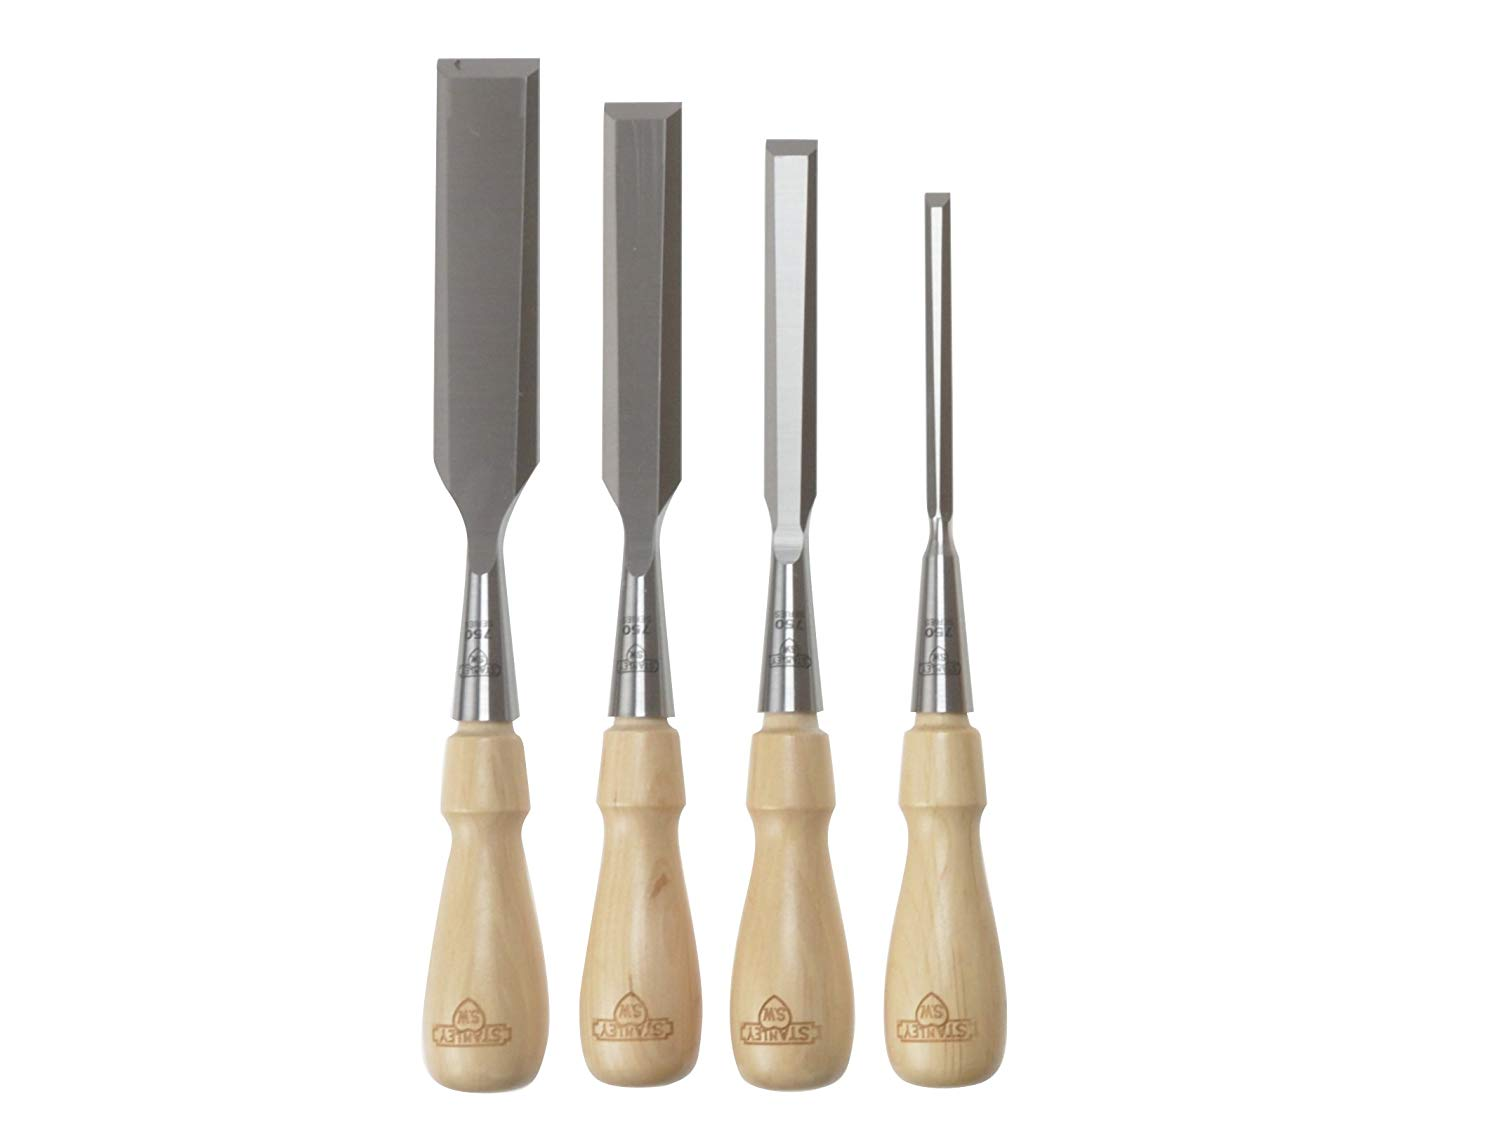 Stanley 16-791 4-Piece Wood Chisels